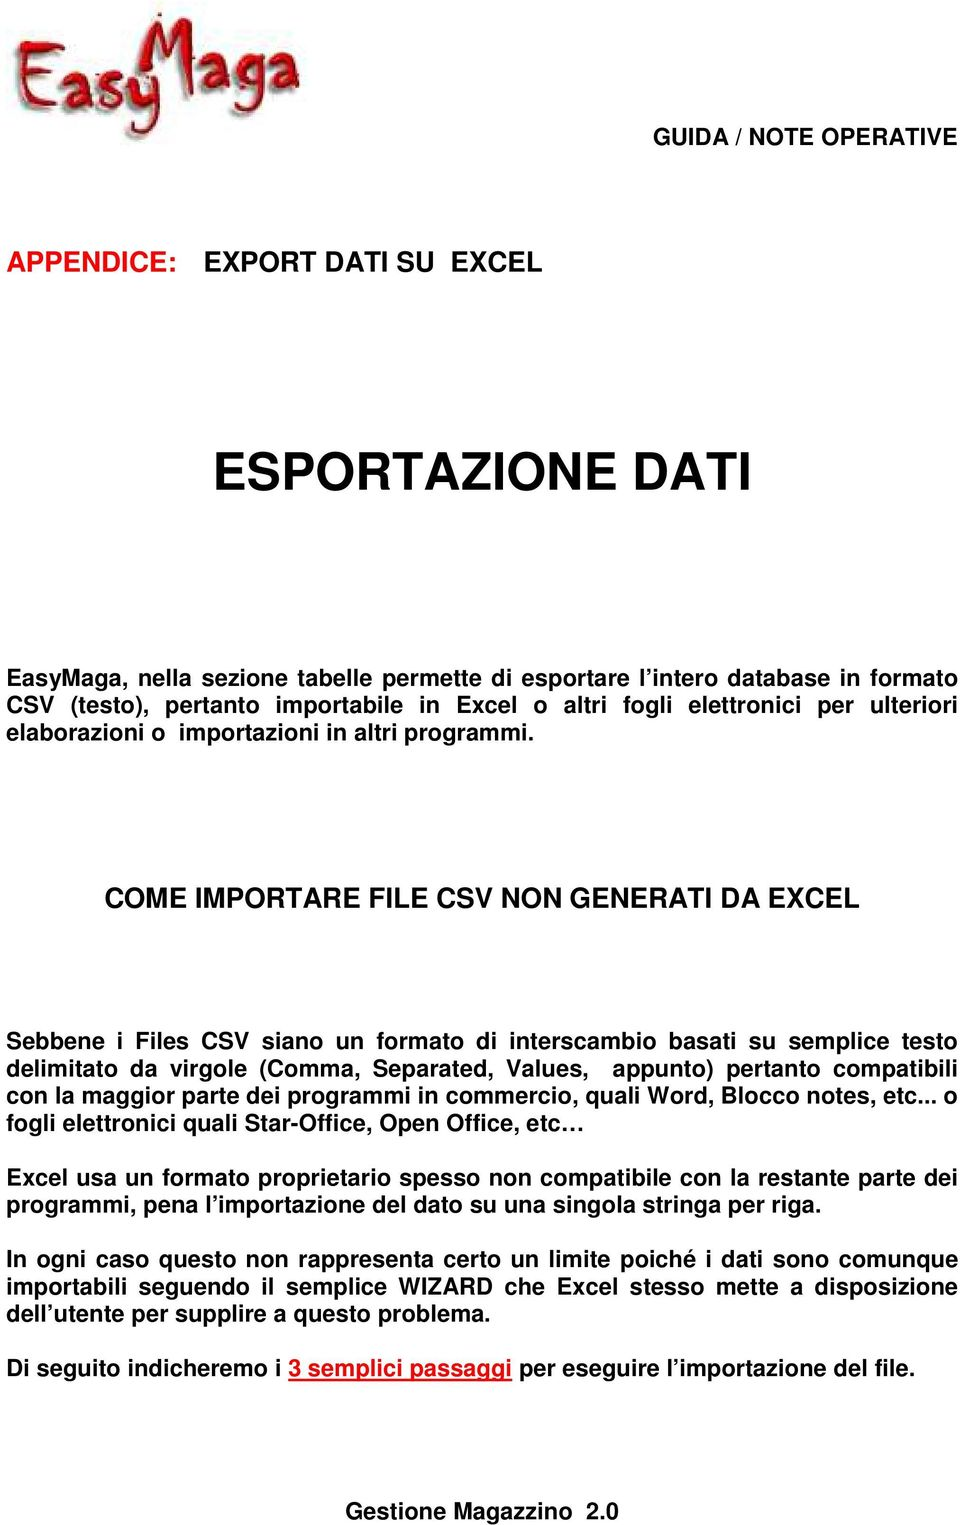 COME IMPORTARE FILE CSV NON GENERATI DA EXCEL Sebbene i Files CSV siano un formato di interscambio basati su semplice testo delimitato da virgole (Comma, Separated, Values, appunto) pertanto